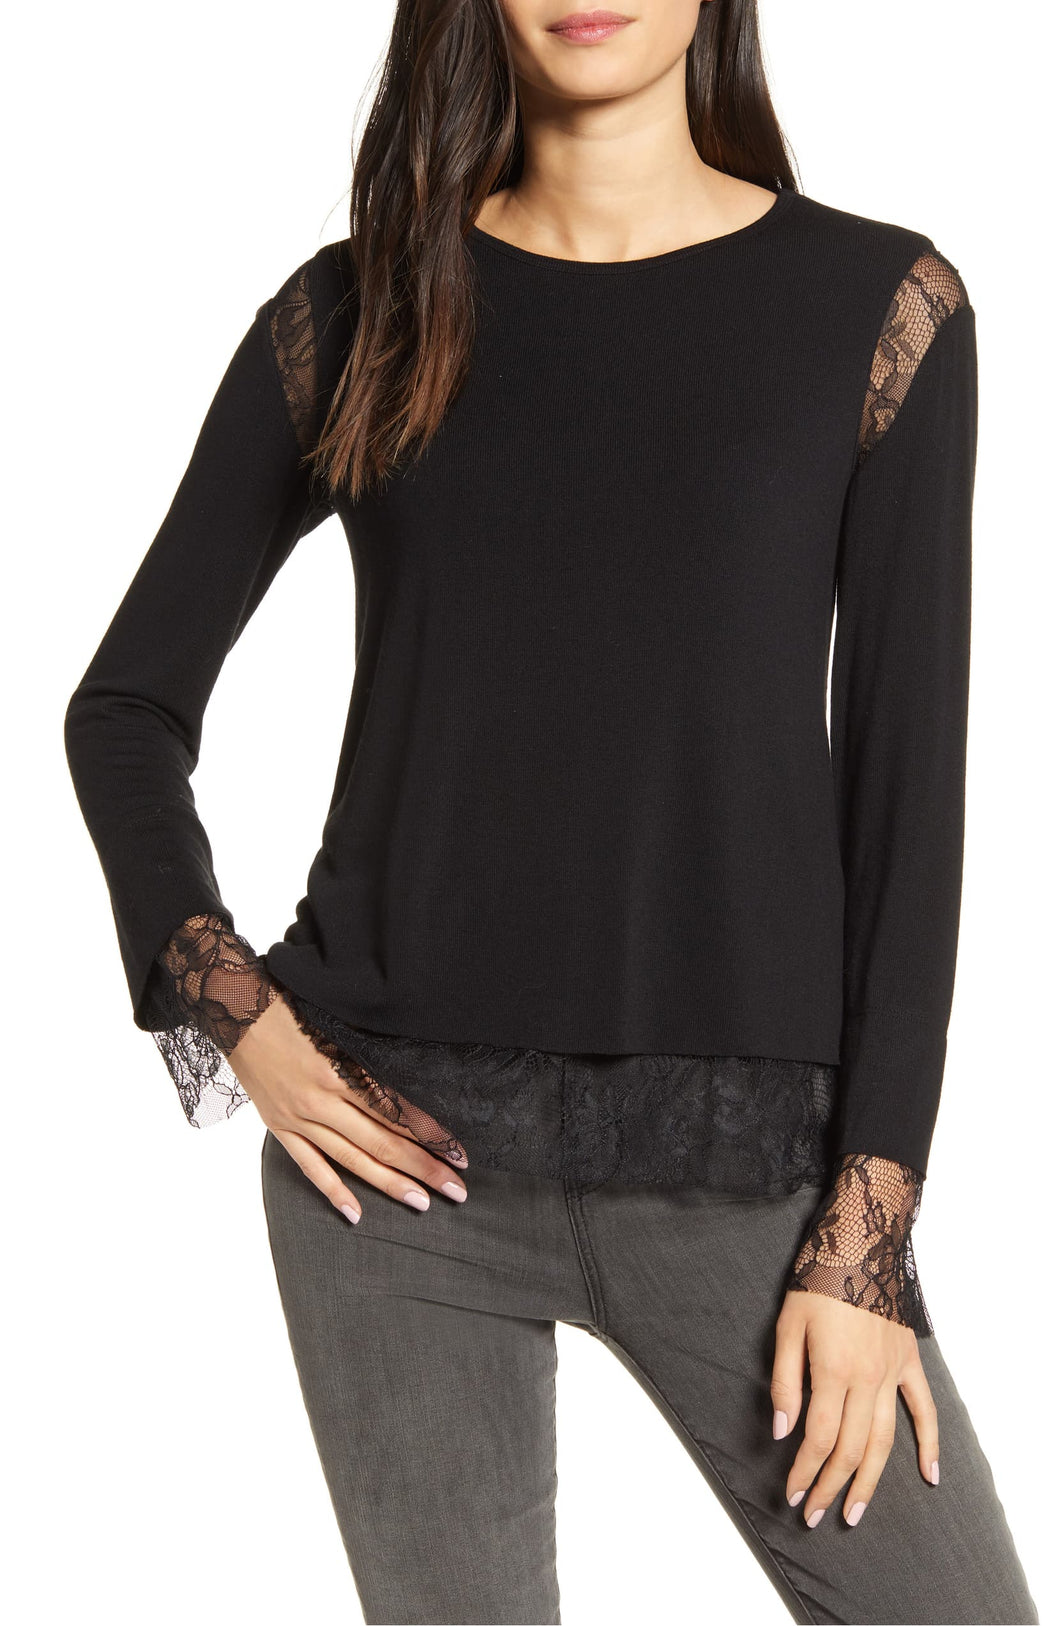 Bailey44 Isabel Lace Trim Top - Black